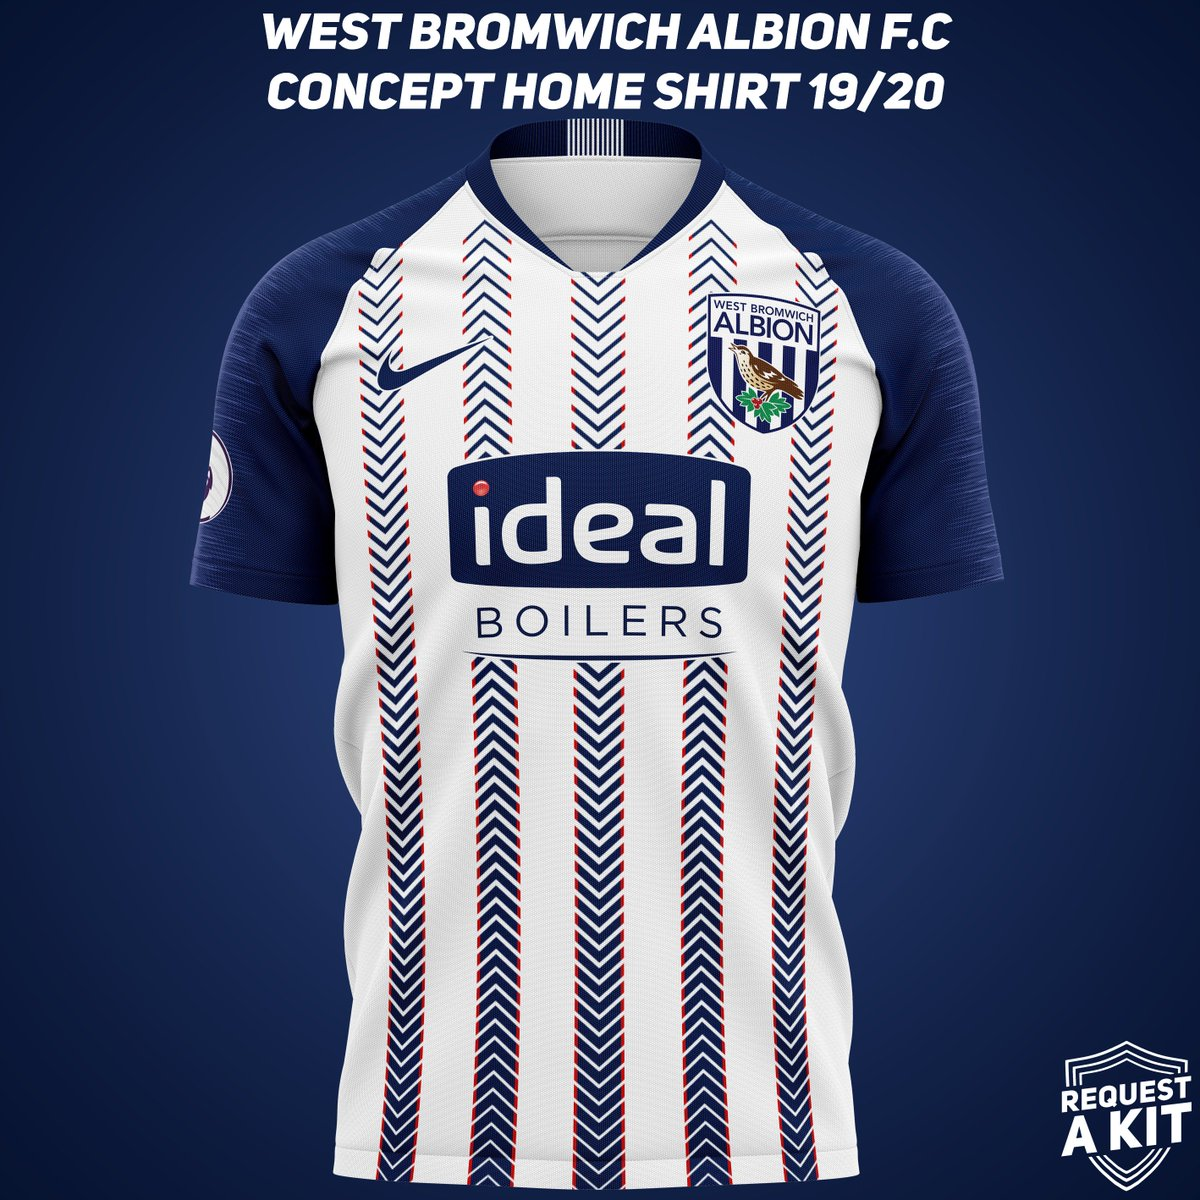 1d4b0383e9 ... @fmbase) #WestBrom #WBA #Baggies #Hawthorns #WBAFC #Albion  #WestBromwichAlbion #FM19 #wearethecommunity Download for your Football  Manager save here!: ...